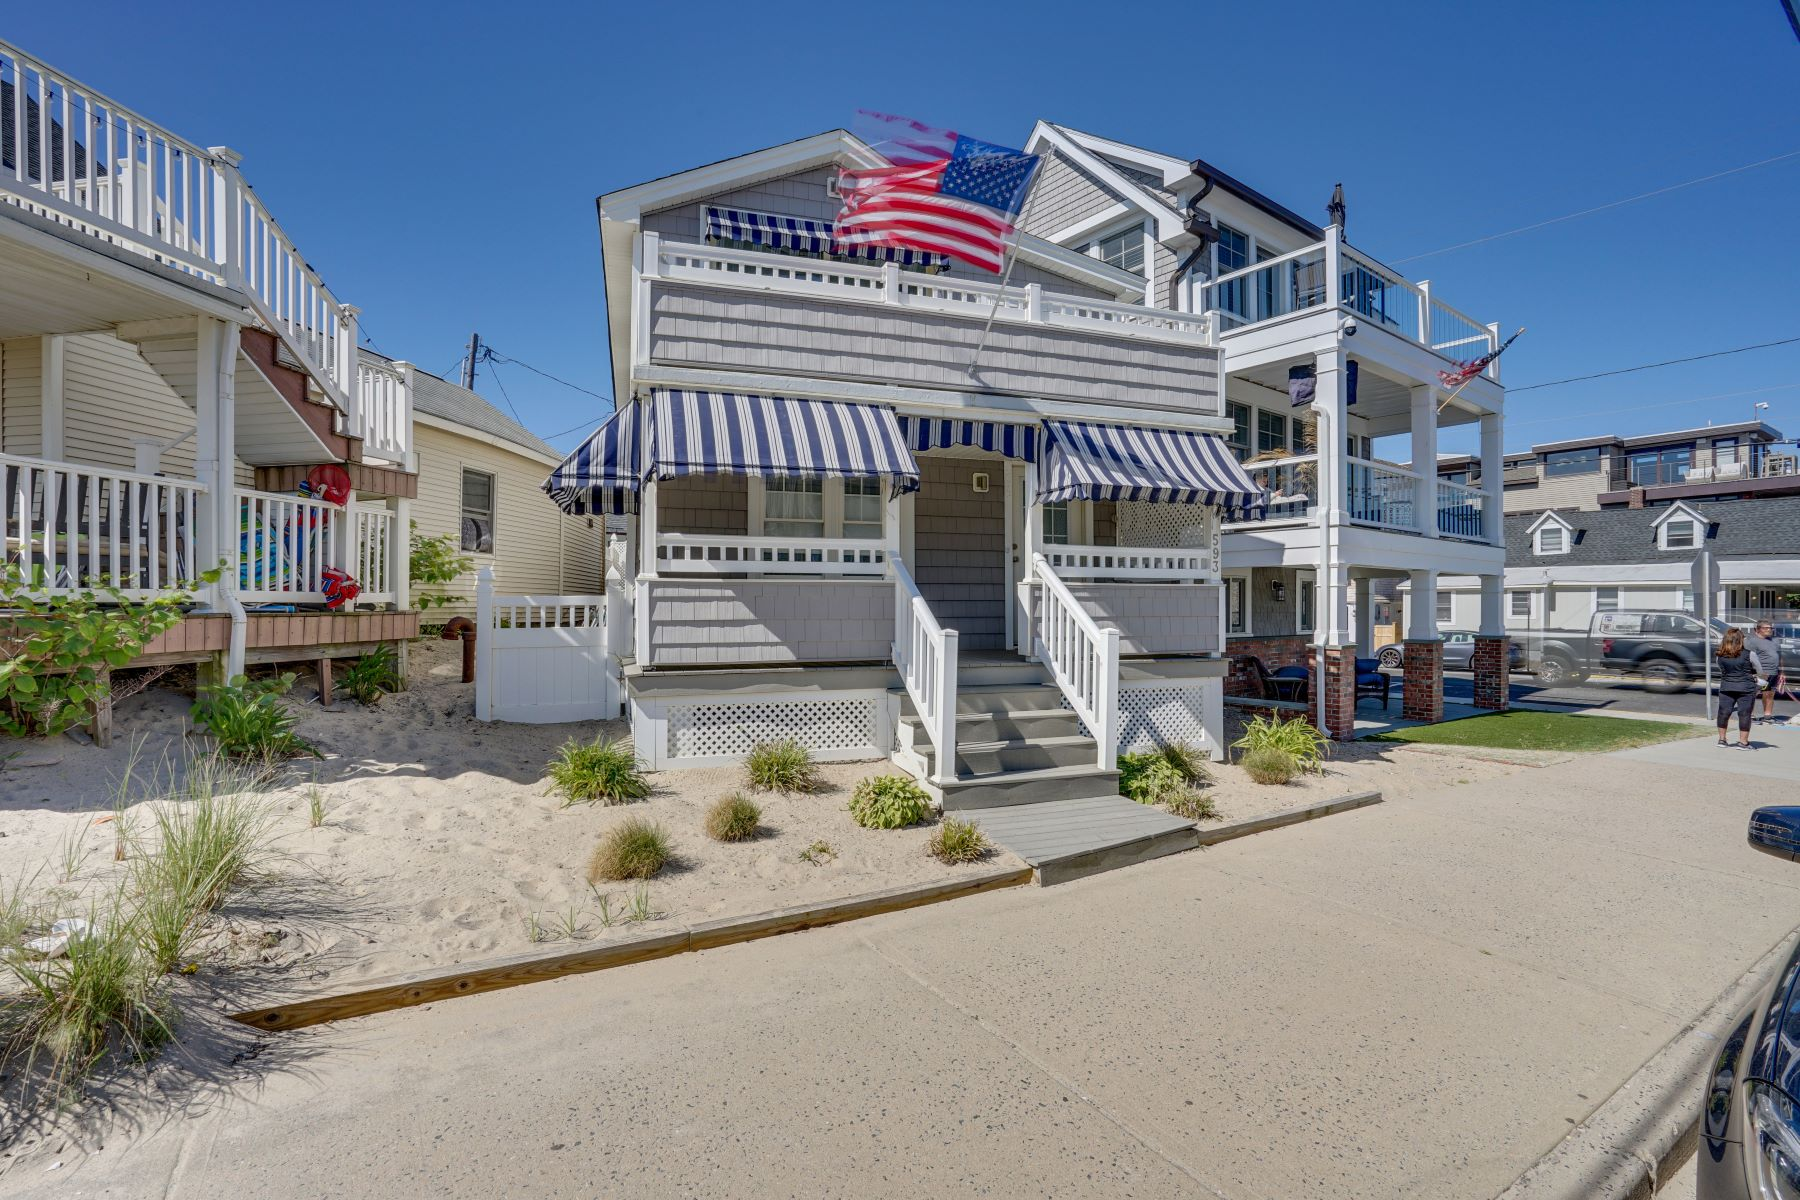 Single Family Homes for Sale at Little Piece of Paradise 593 Brielle Road Manasquan, New Jersey 08736 United States